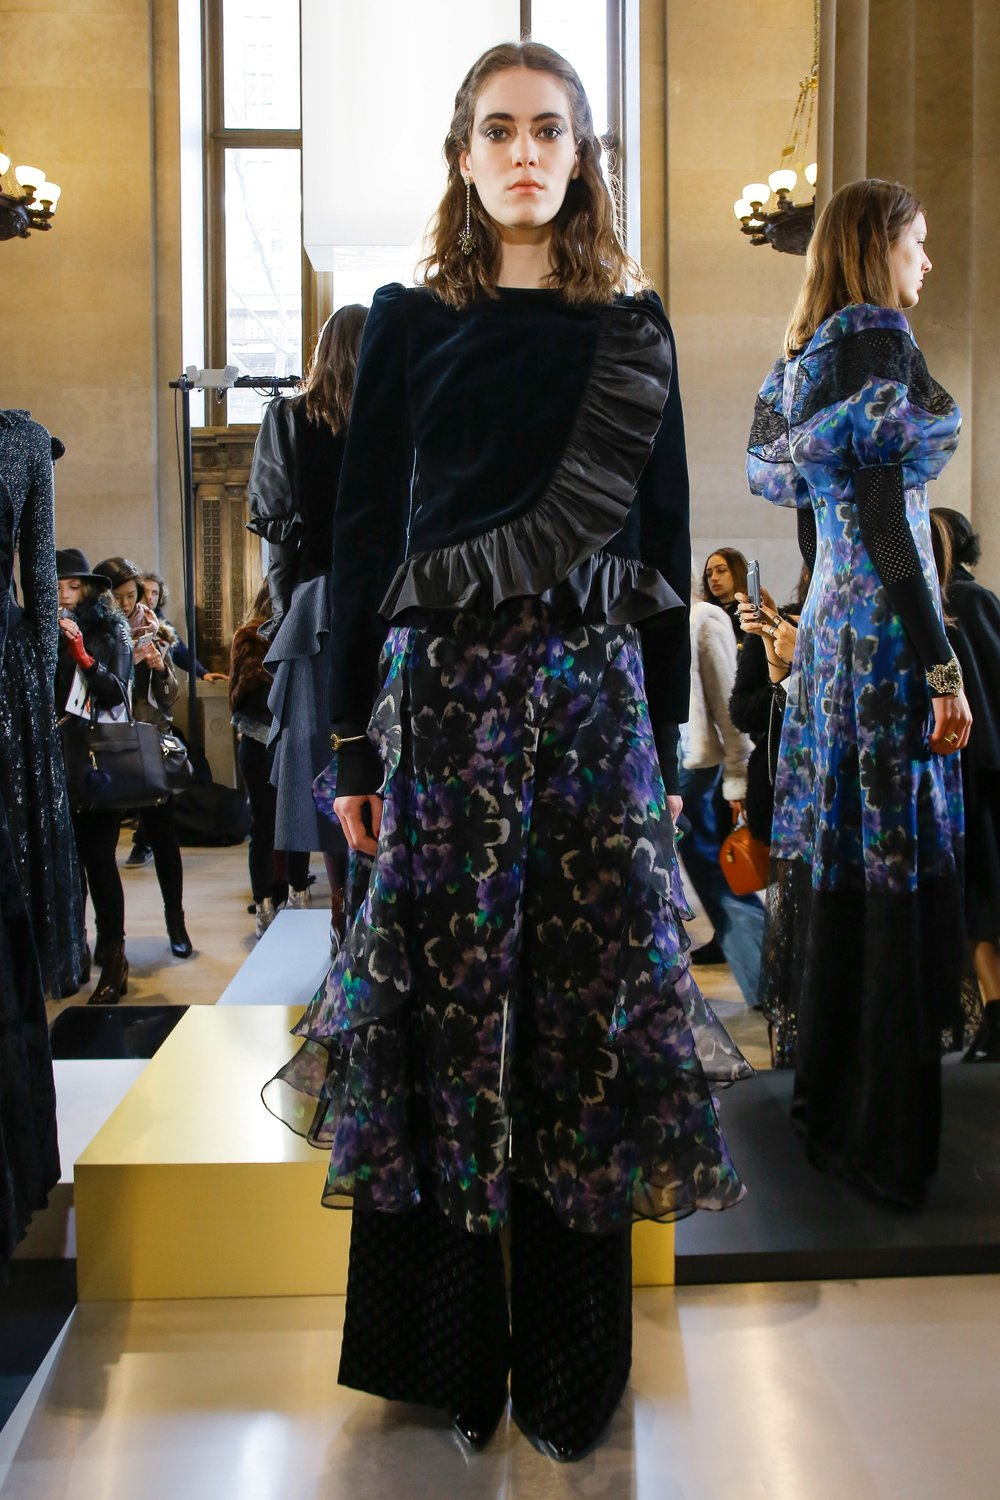 Jill Stuart Fashion Presentation Fall Winter 2017 Esther Santer Fashion Blog Louboutins & Love NYC Street Style Blogger Outfit OOTD Trendy Runway Run Way NYFW Leather Lace Boots Velvet Black Colors Colorful Pinstripes Skirt Shirt Coat Jacket Ruffles.jpg